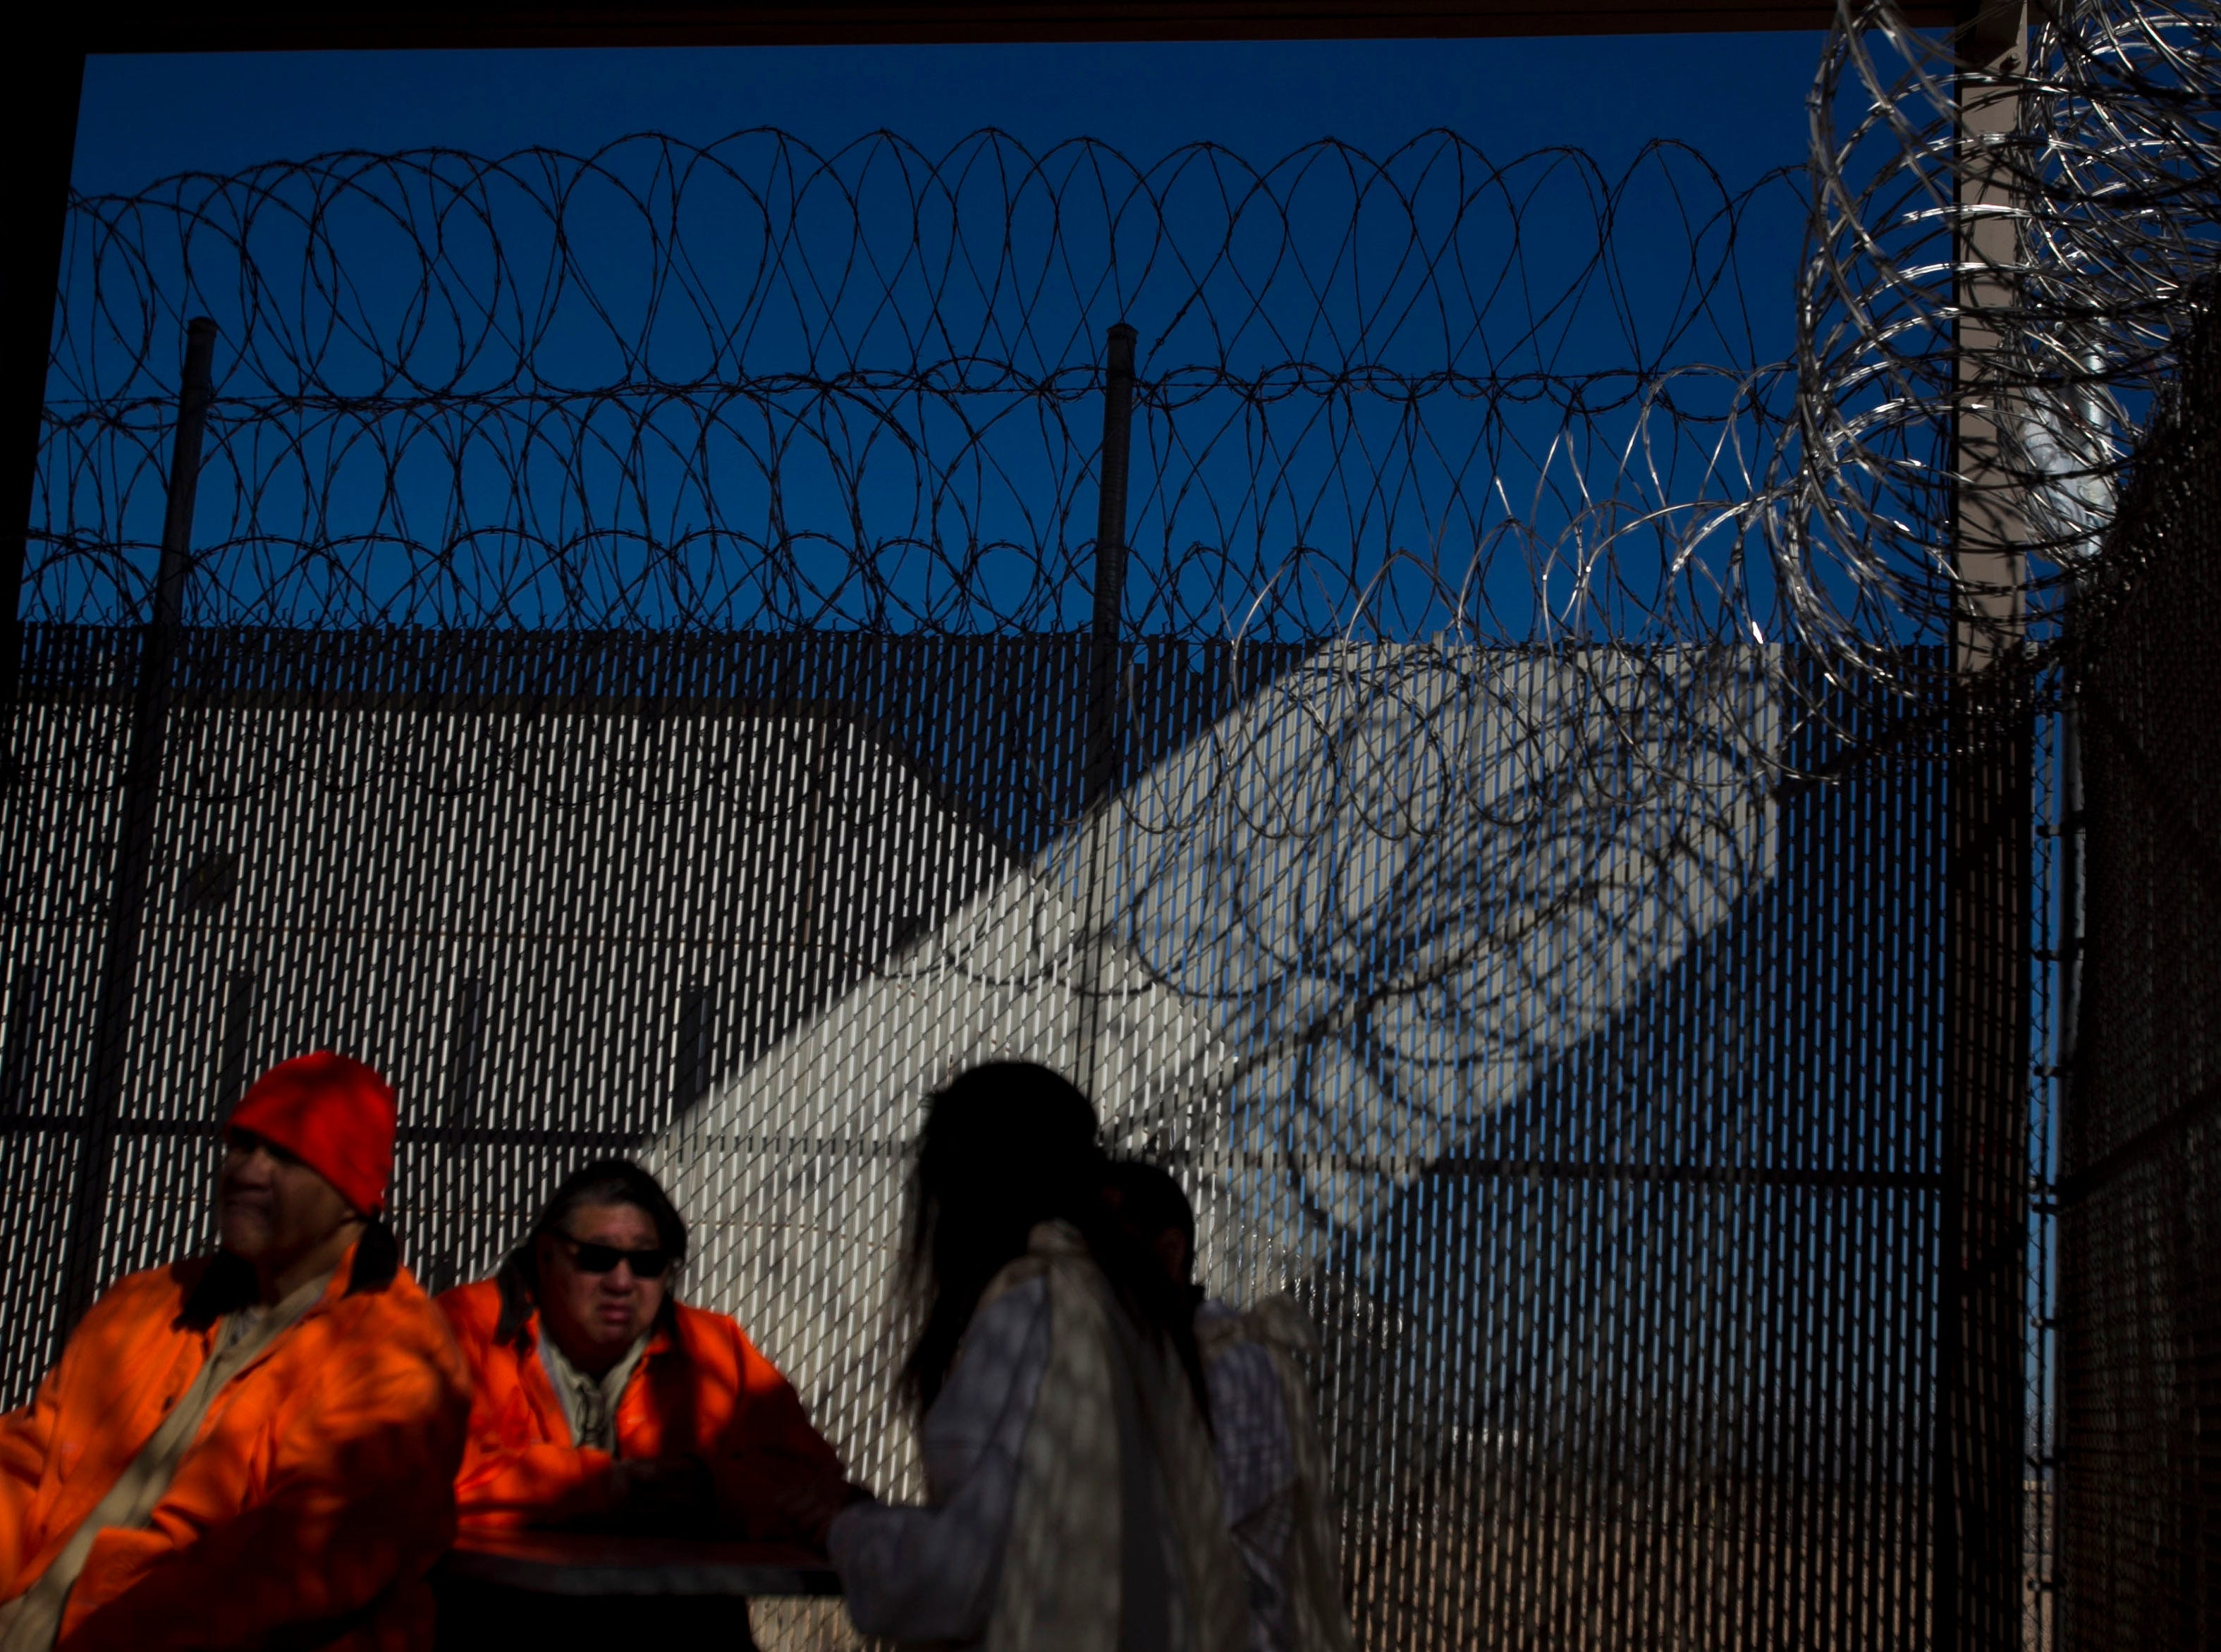 Inmates participate in a sunrise service wearing their traditional Hawaiian dress during the ceremonies on Oct. 9, 2011, to honor Lono, the Hawaiian god of rain and fertility, at Saguaro Correctional Center in Eloy. The private prison houses inmates from Hawaii serving lengthy sentences.